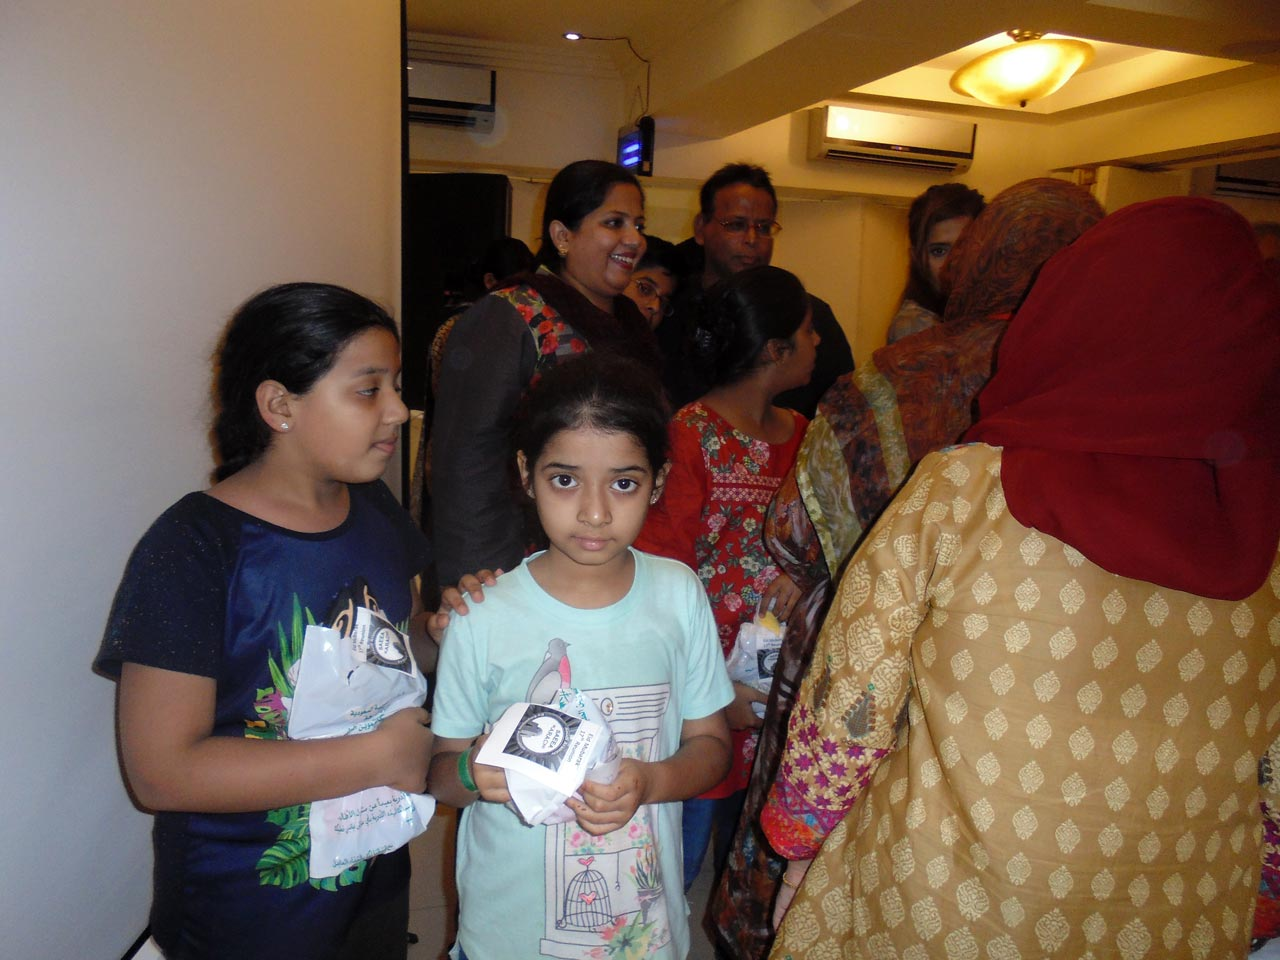 Zoya Imran, Zara Imran after receiving their gifts from the President SAEEA.